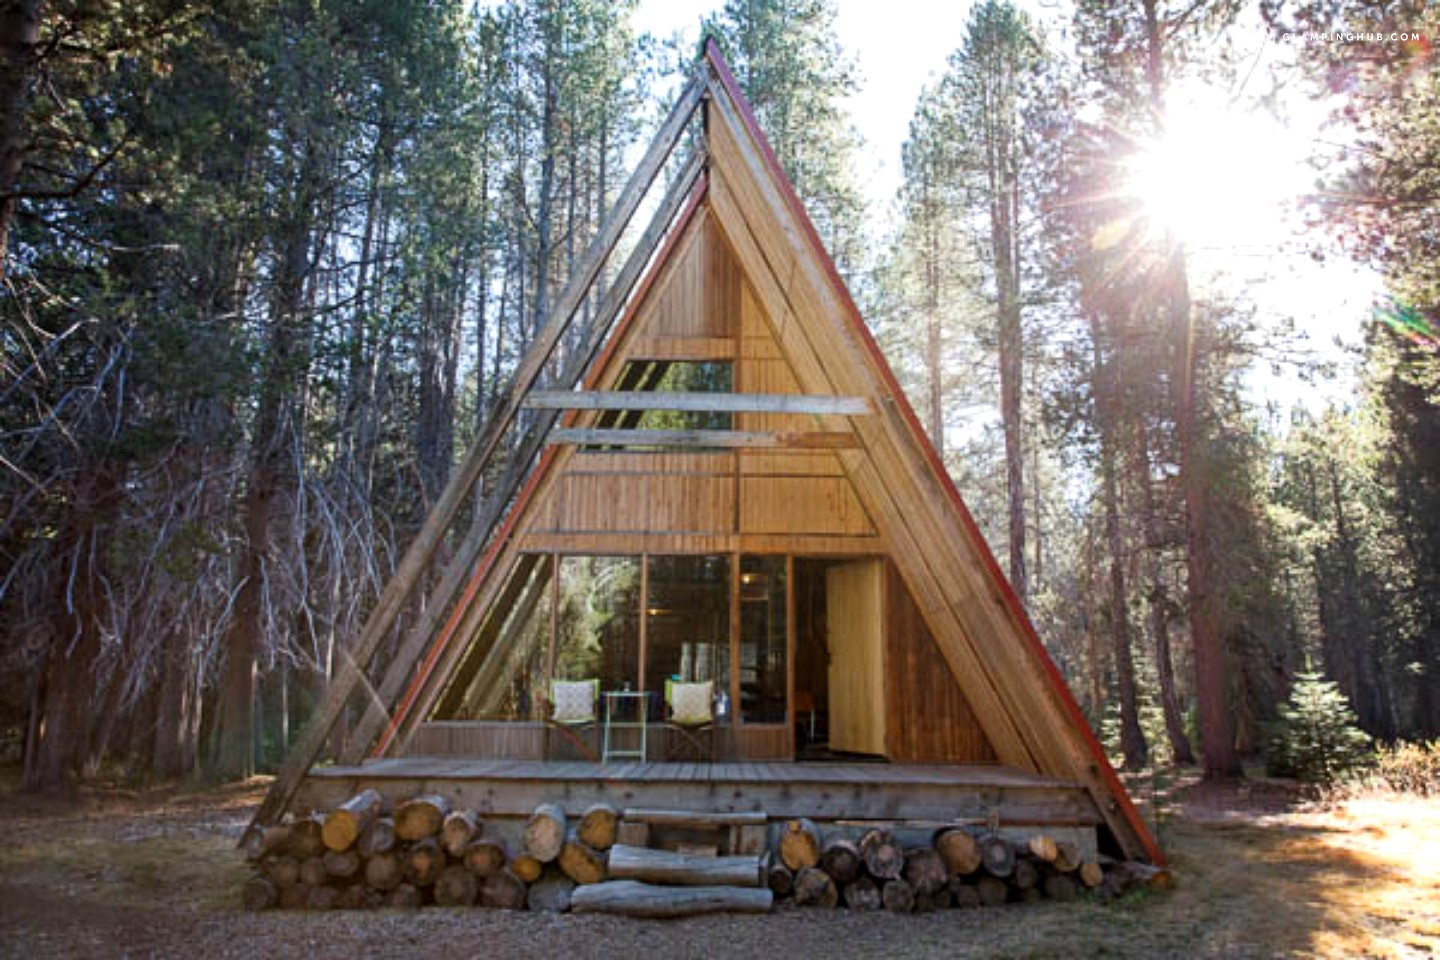 Spacious luxury cabin near yosemite national park california A frame builders